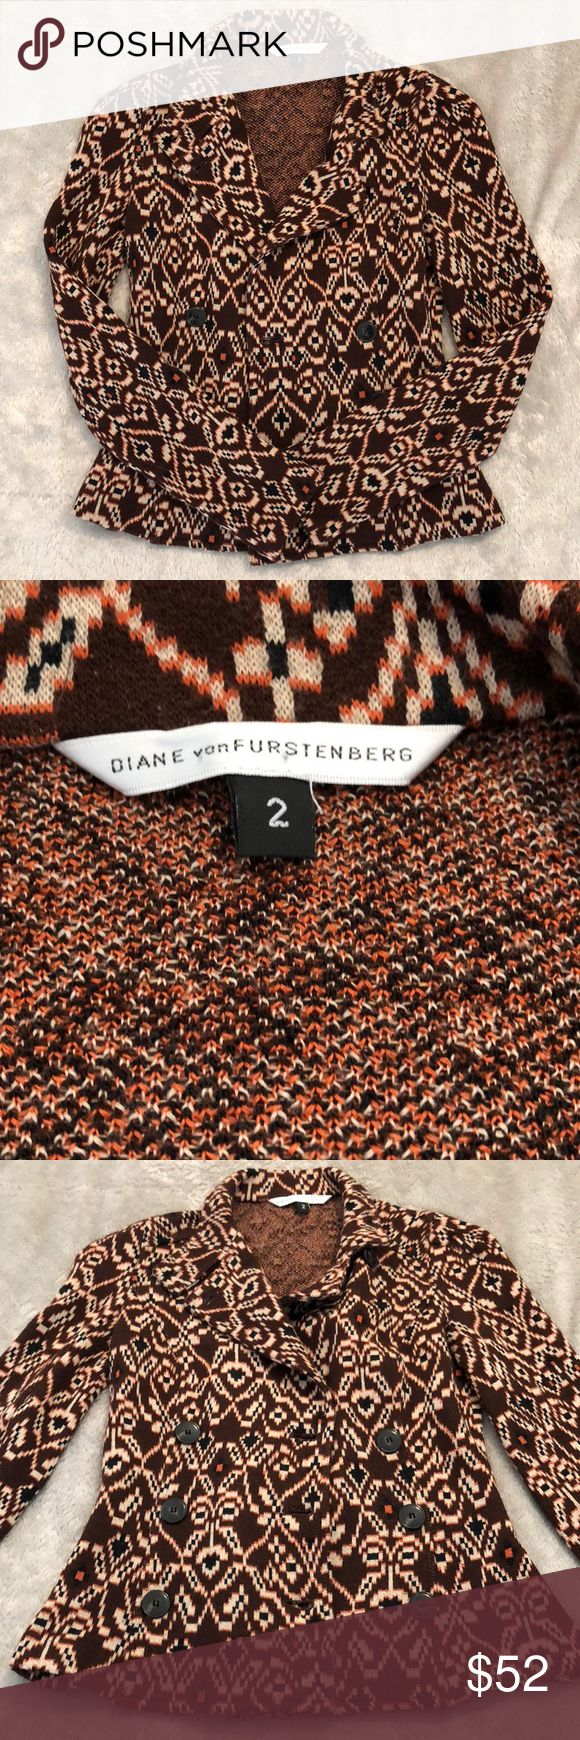 DVF Tribal Print Sweater Jacket Beautiful Diane Von Furstenberg Tribal Print Sweater Jacket. Size 2. Polyester/Wool blend. In excellent condition. All reasonable offers welcome! ❤️ Diane Von Furstenberg Sweaters